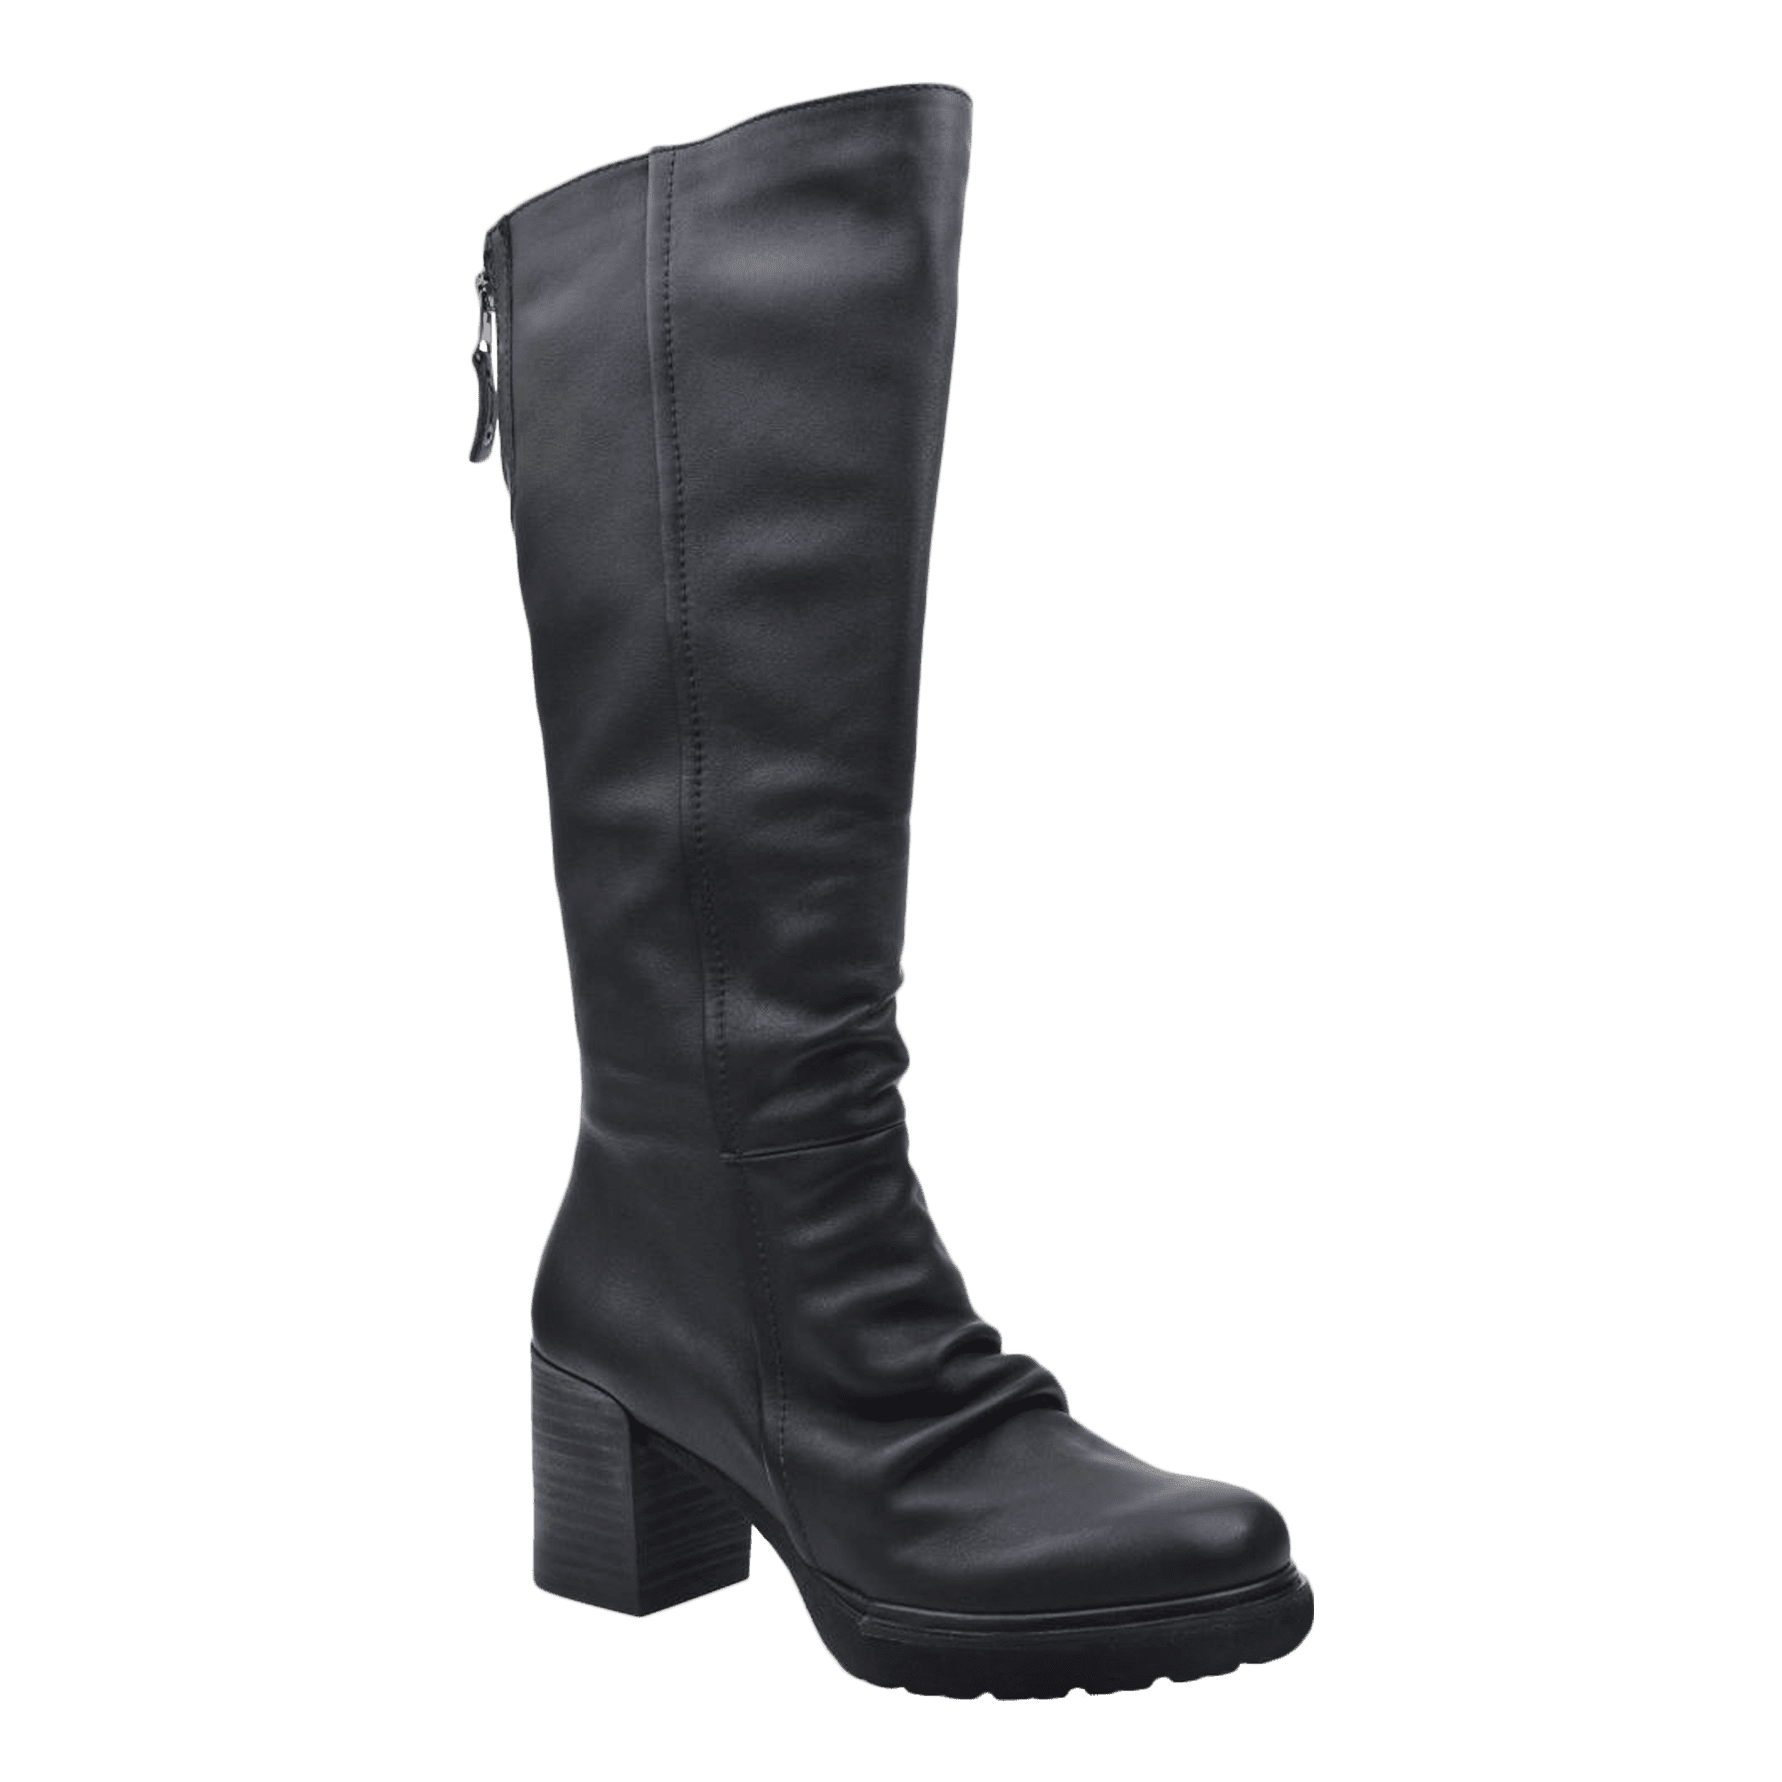 best choice save up to 60% special discount GAMBOL in BLACK Knee High Boots